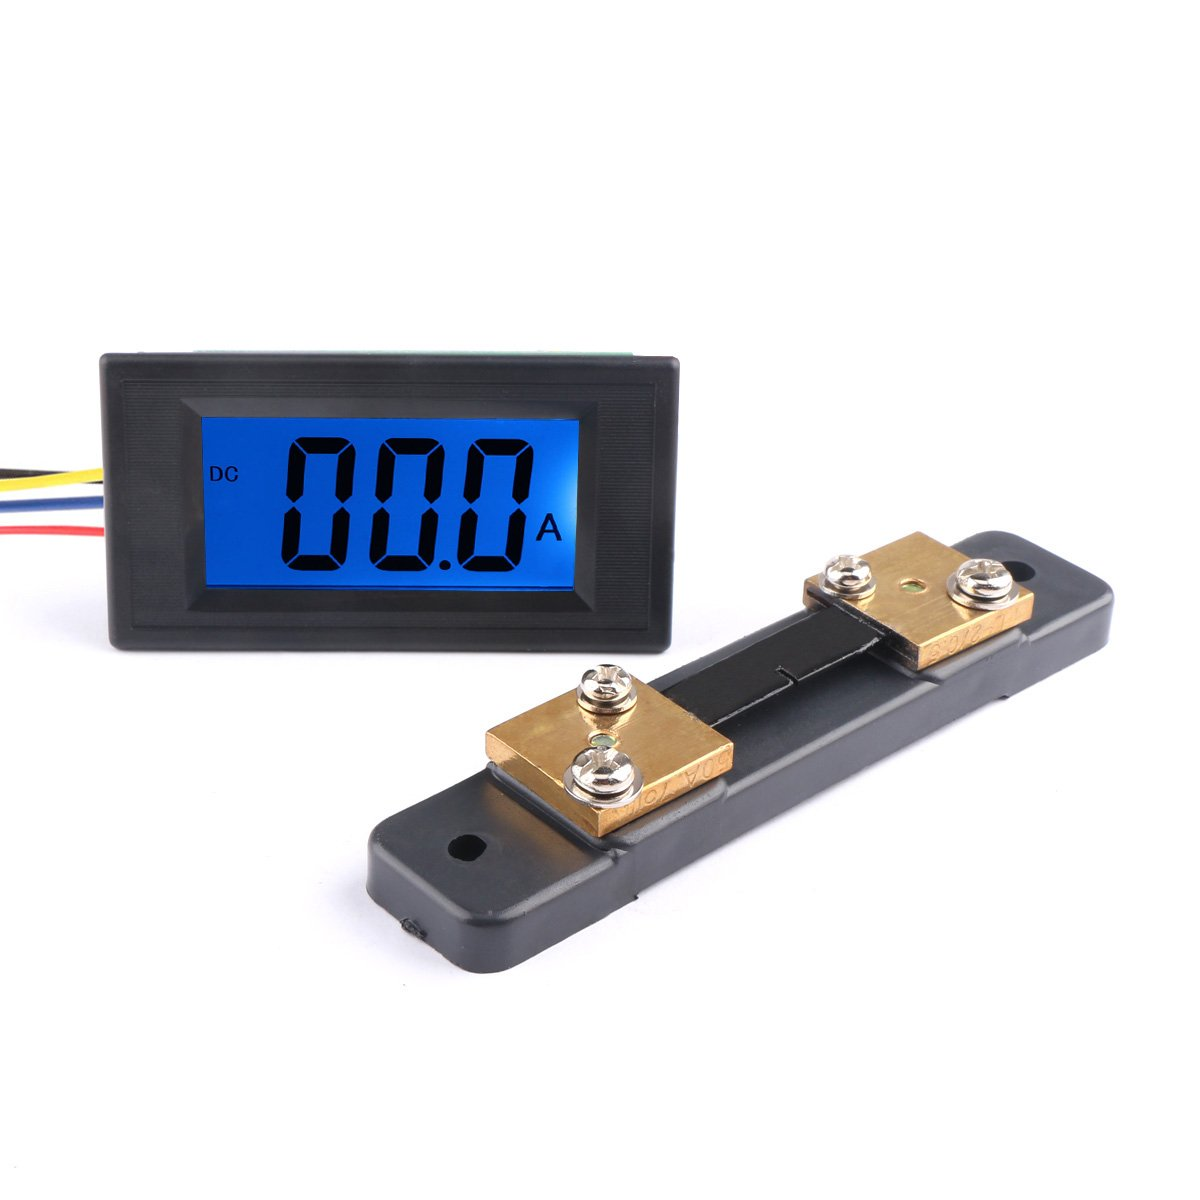 DROK Digital DC 12V Ammeter Panel Amp Meter Gauge DC 0-+/-50A Current Tester AC/DC 8-12V Current Monitor with Blue Back-light Black Font for Automotive Vehicle 300114